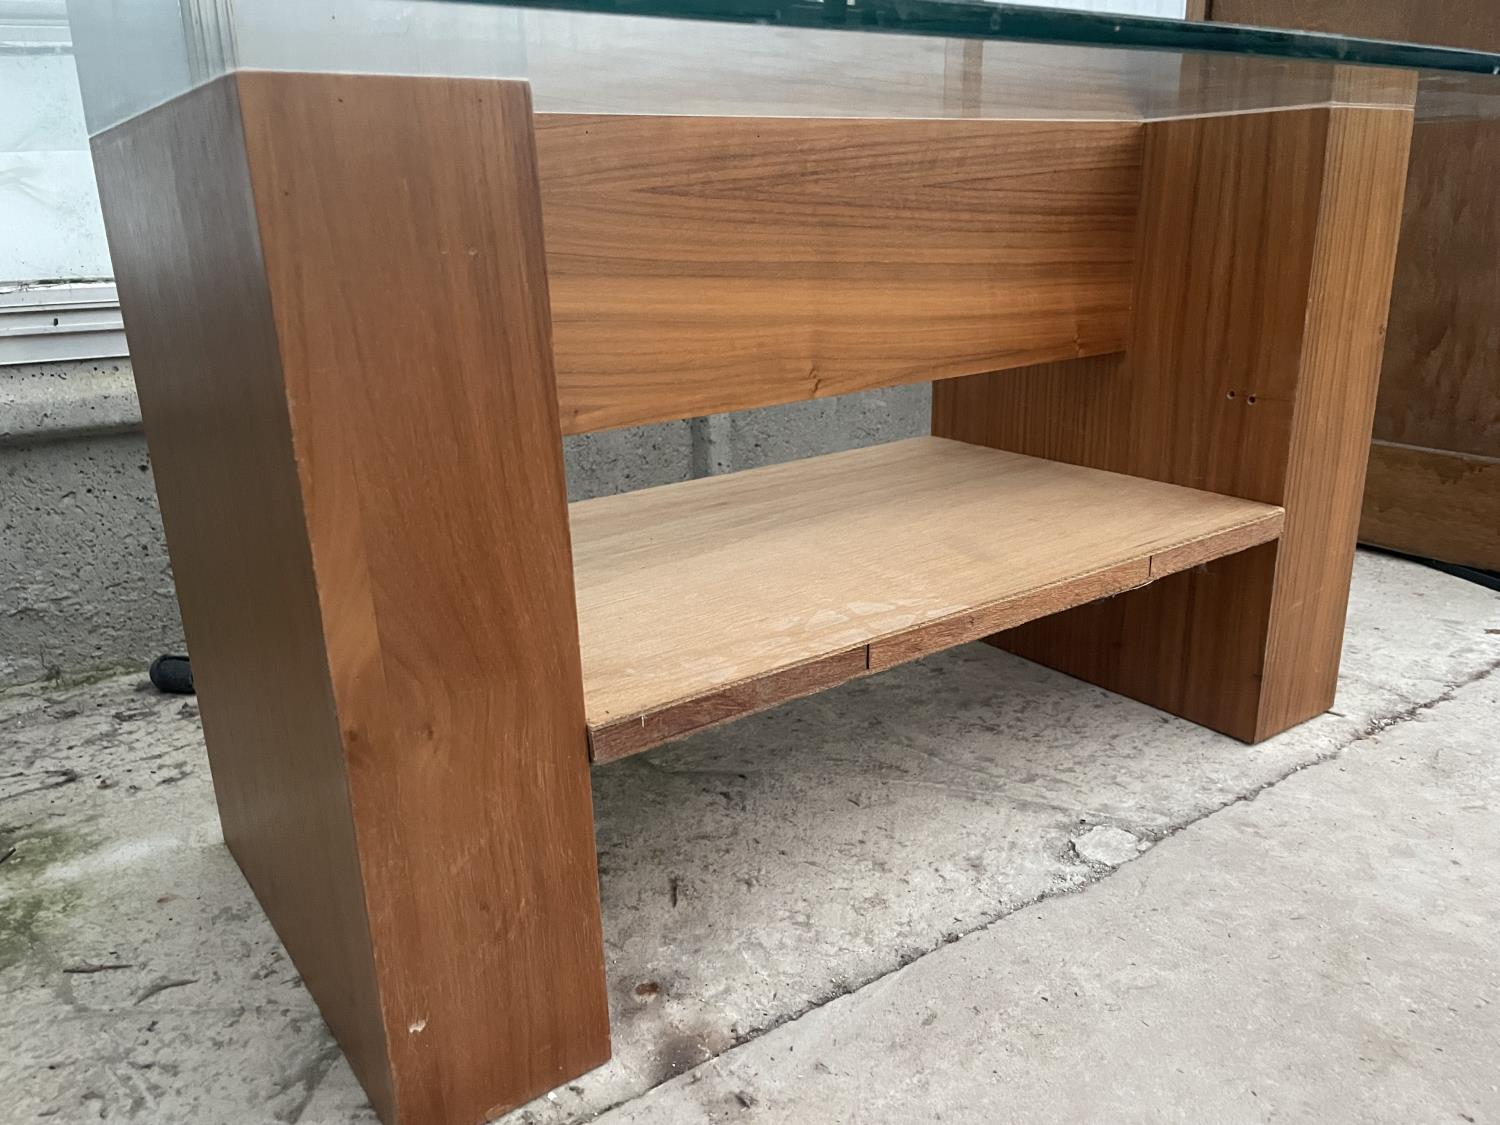 """A MODERN GLASS TOP COFFEE TABLE, 43X22"""" - Image 3 of 4"""